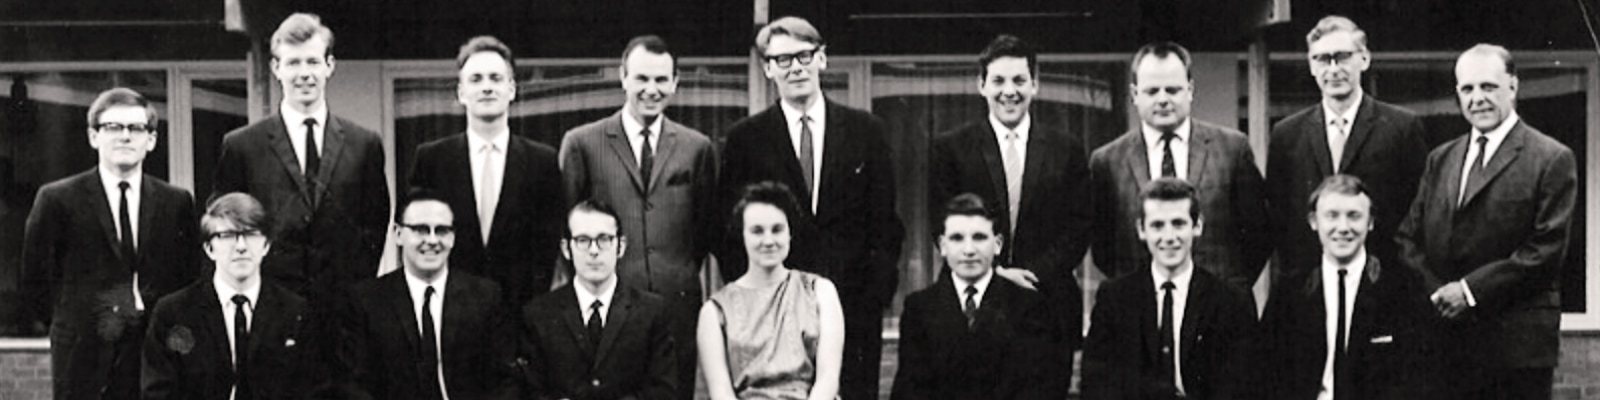 A black and white photo of the first class to graduate in 1967